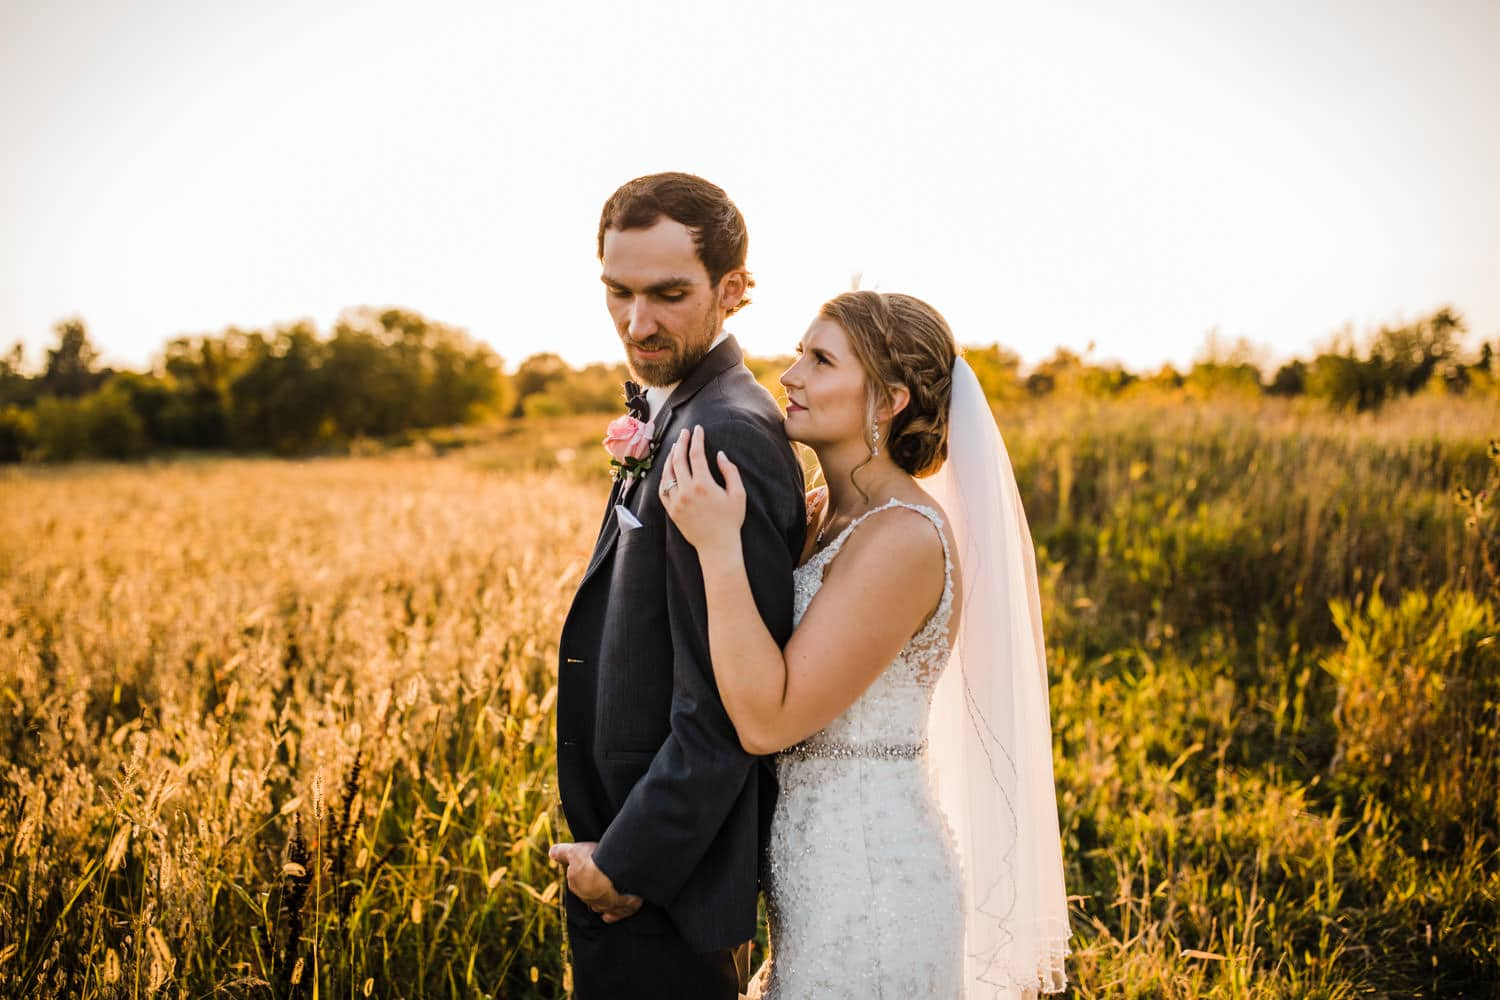 bride and groom stand in field during golden hour - strathmere summer wedding